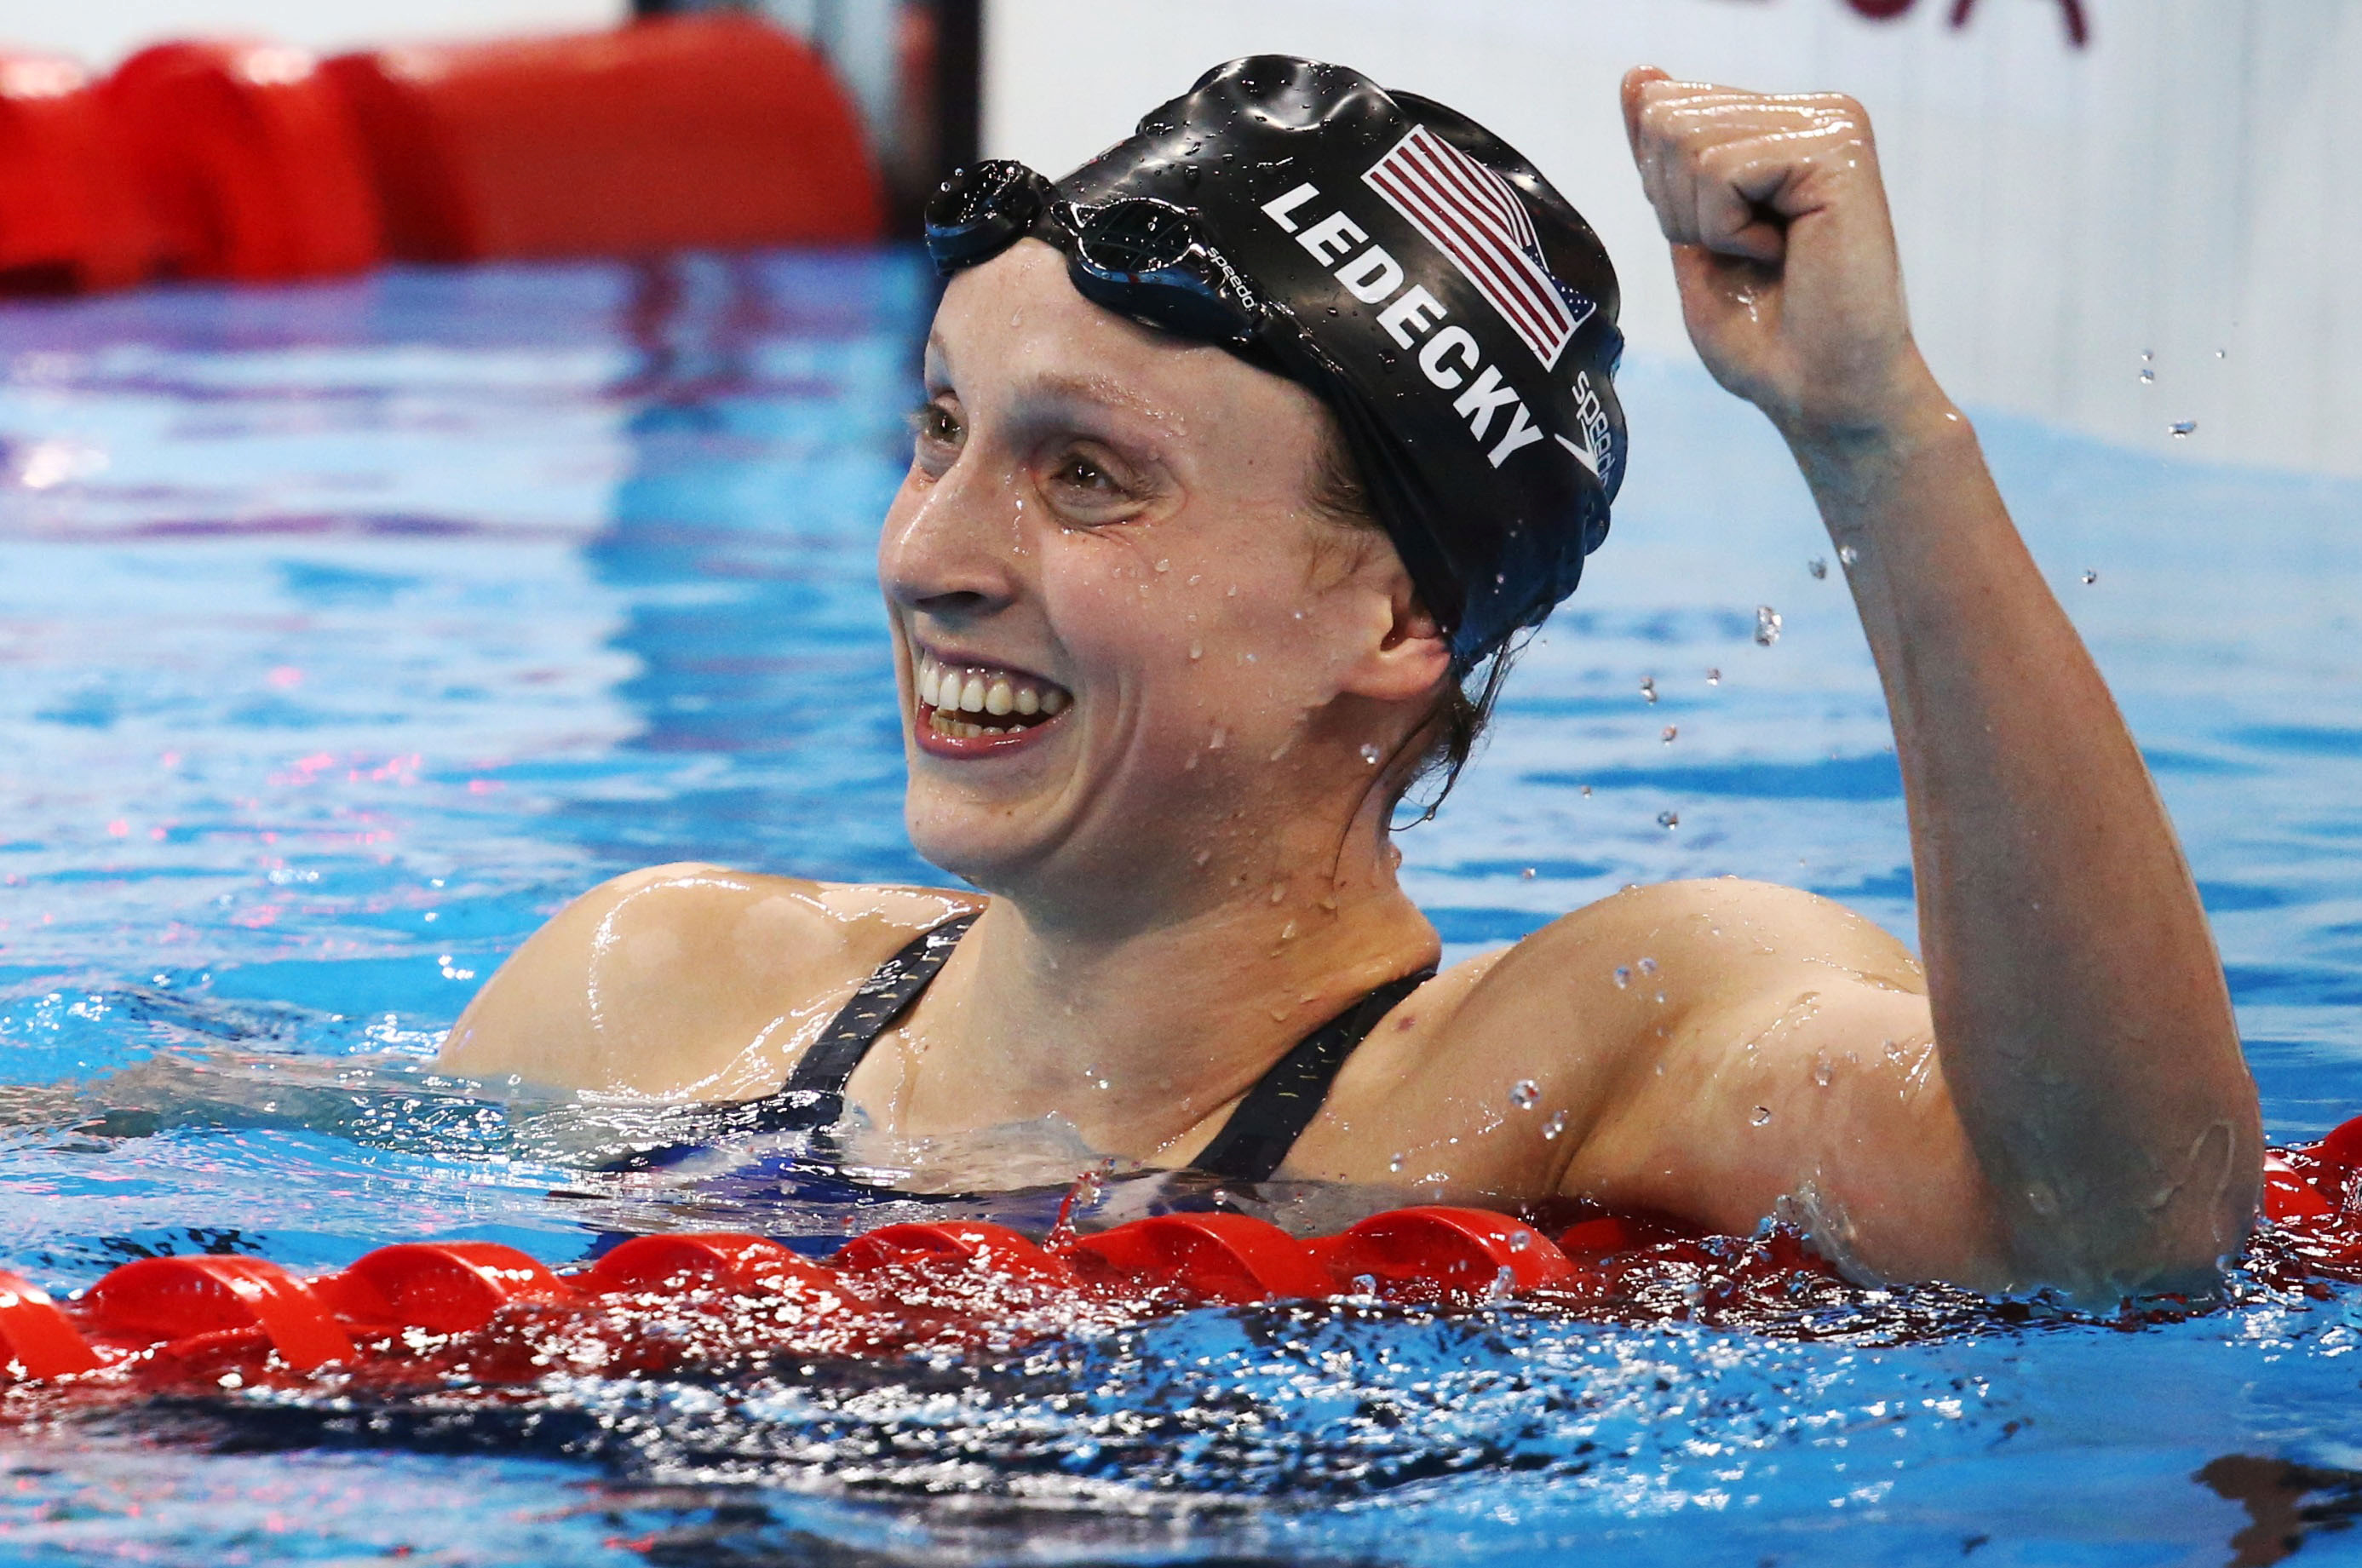 2016 Rio Olympics - Swimming - Katie Ledecky (USA) reacts after winning and setting a new world record in Olympic women's 800m freestyle final - Olympic Aquatics Stadium - Rio de Janeiro, Brazil - 12/08/2016. REUTERS/Marcos Brindicci